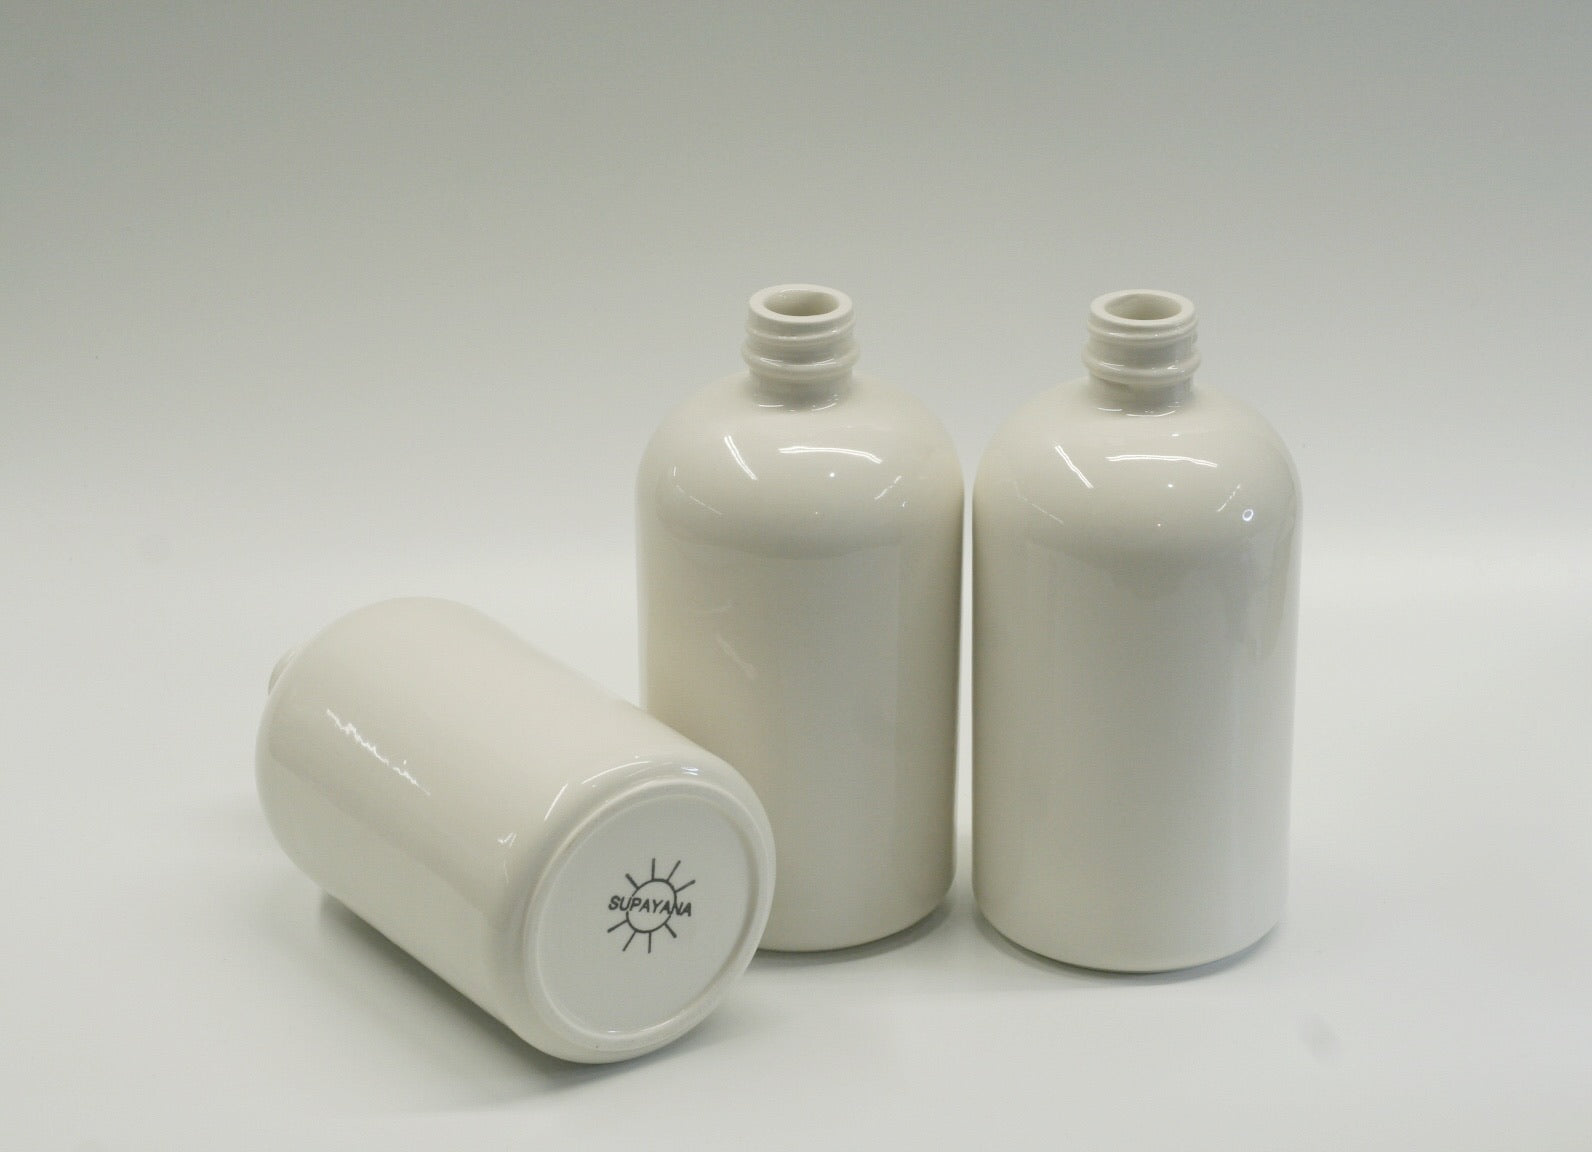 Bouteille blanche haut vissé // White screw top ceramic bottle